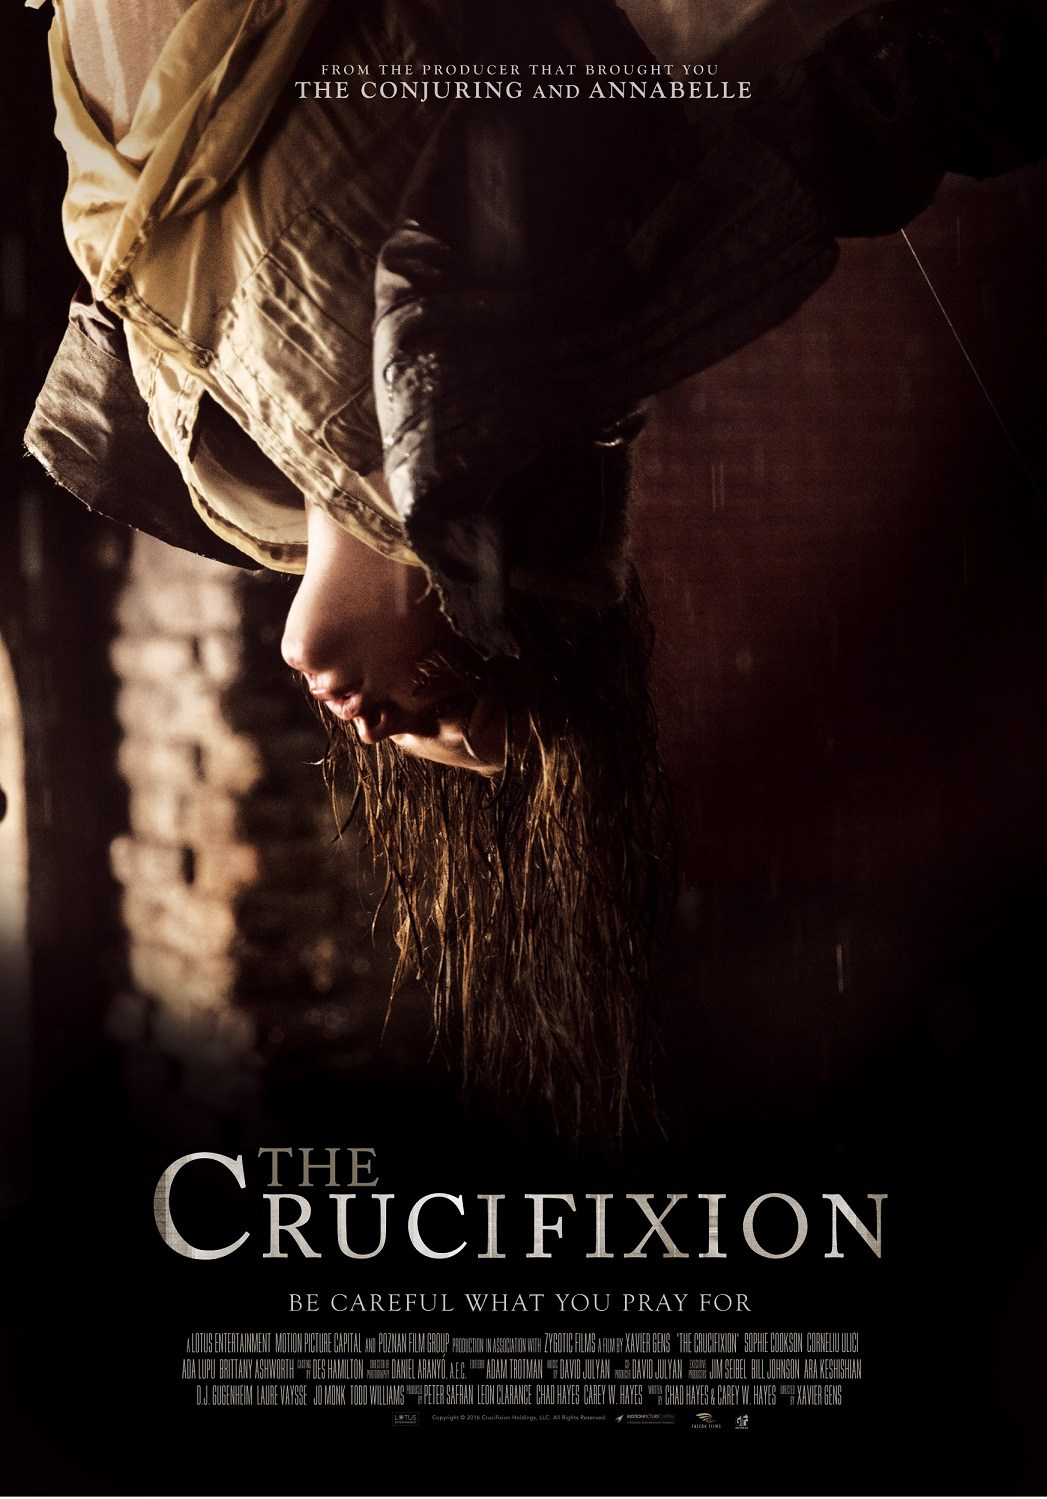 The Crucifixion Trailer